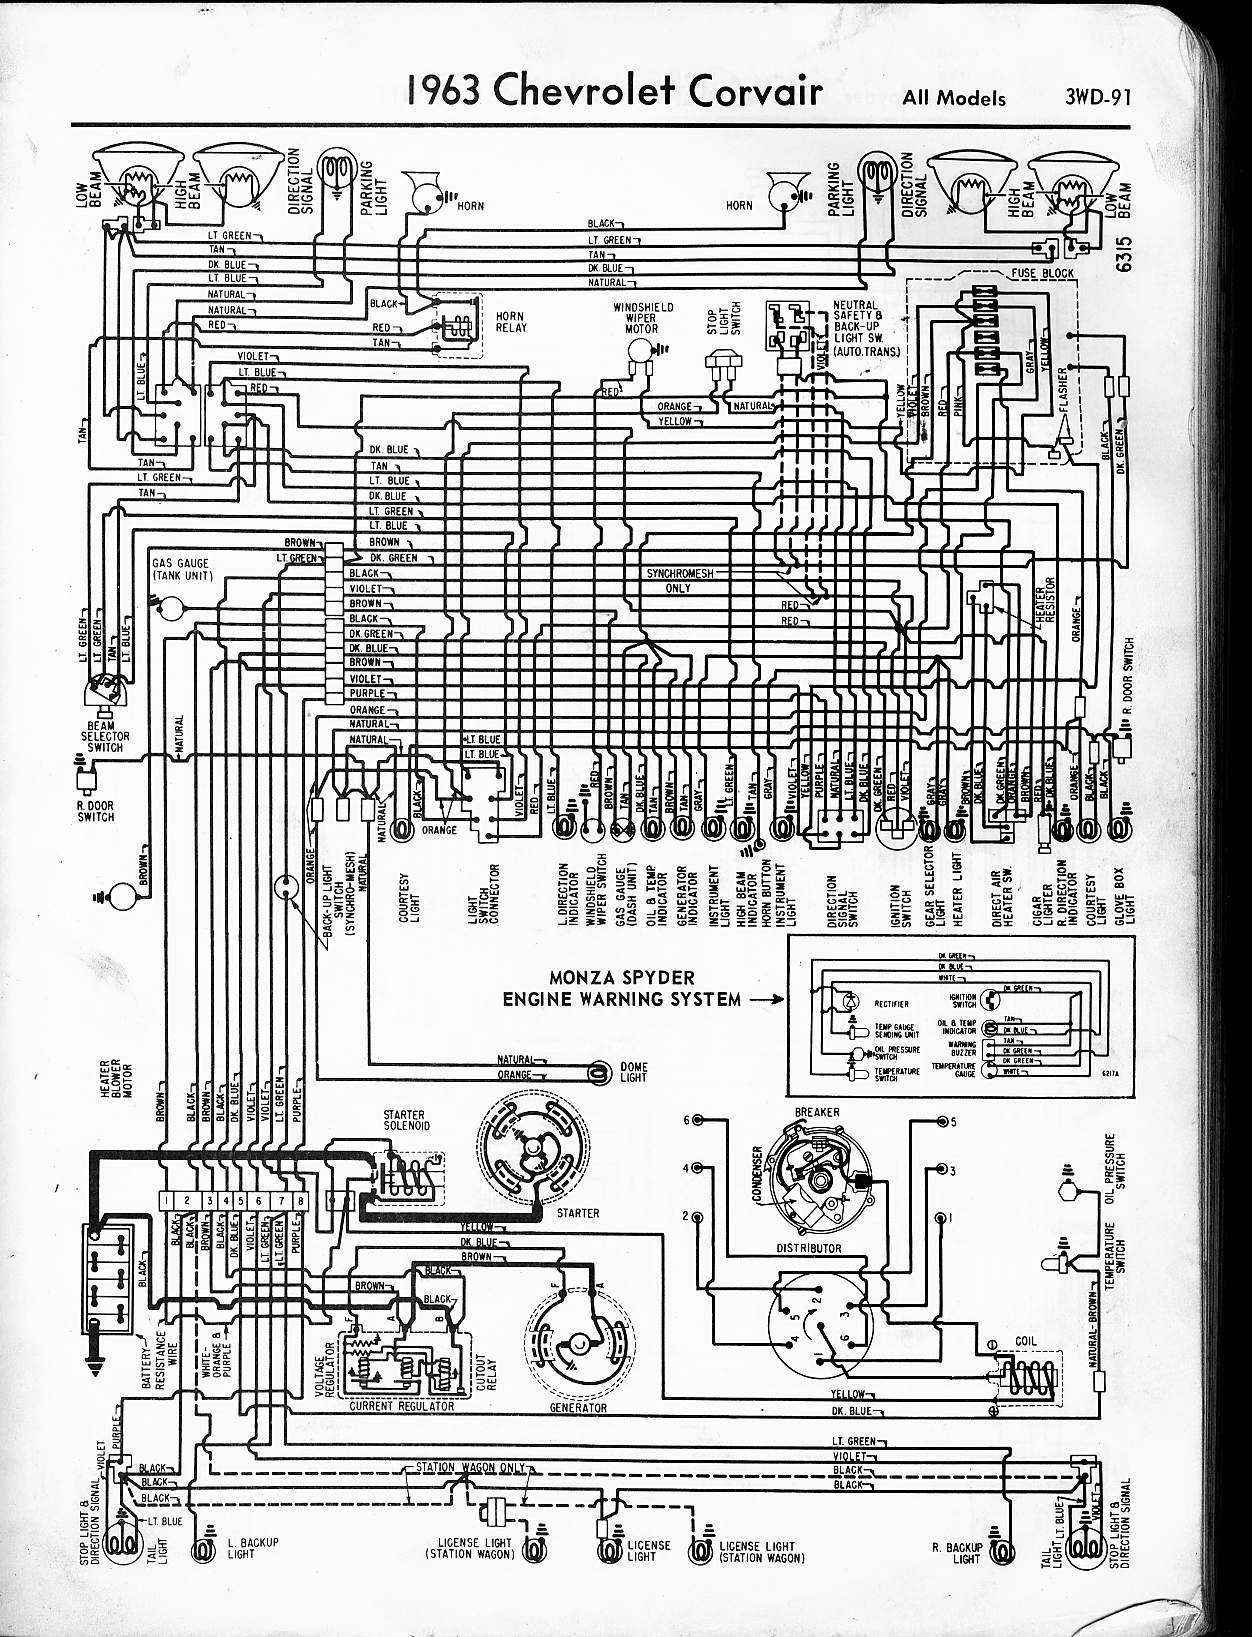 MWireChev63_3WD 091 57 65 chevy wiring diagrams 1964 corvair wiring diagram at love-stories.co